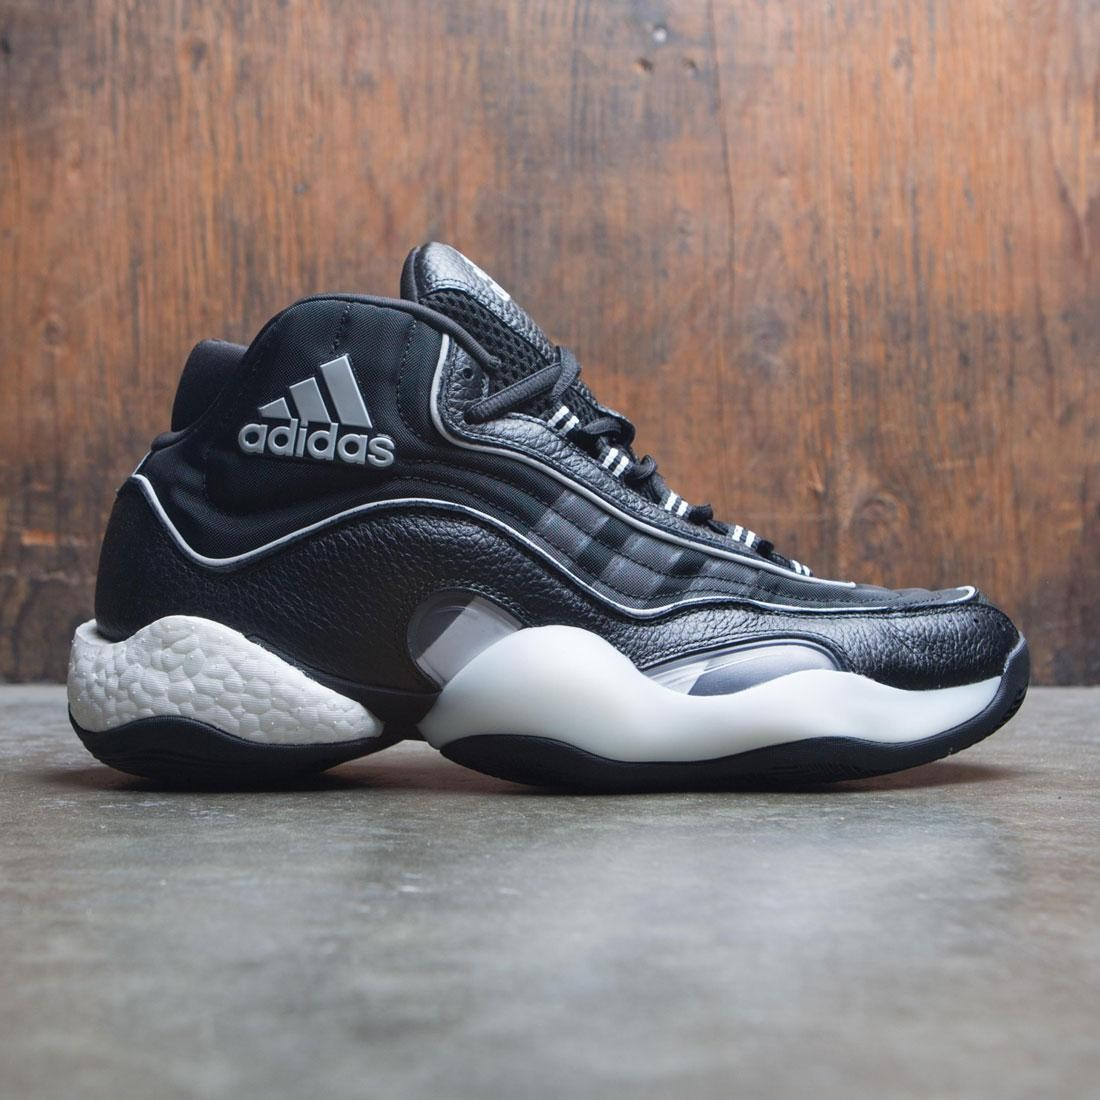 classic fit a39bb e8966 Adidas Men 98 x Crazy BYW black grey two core white